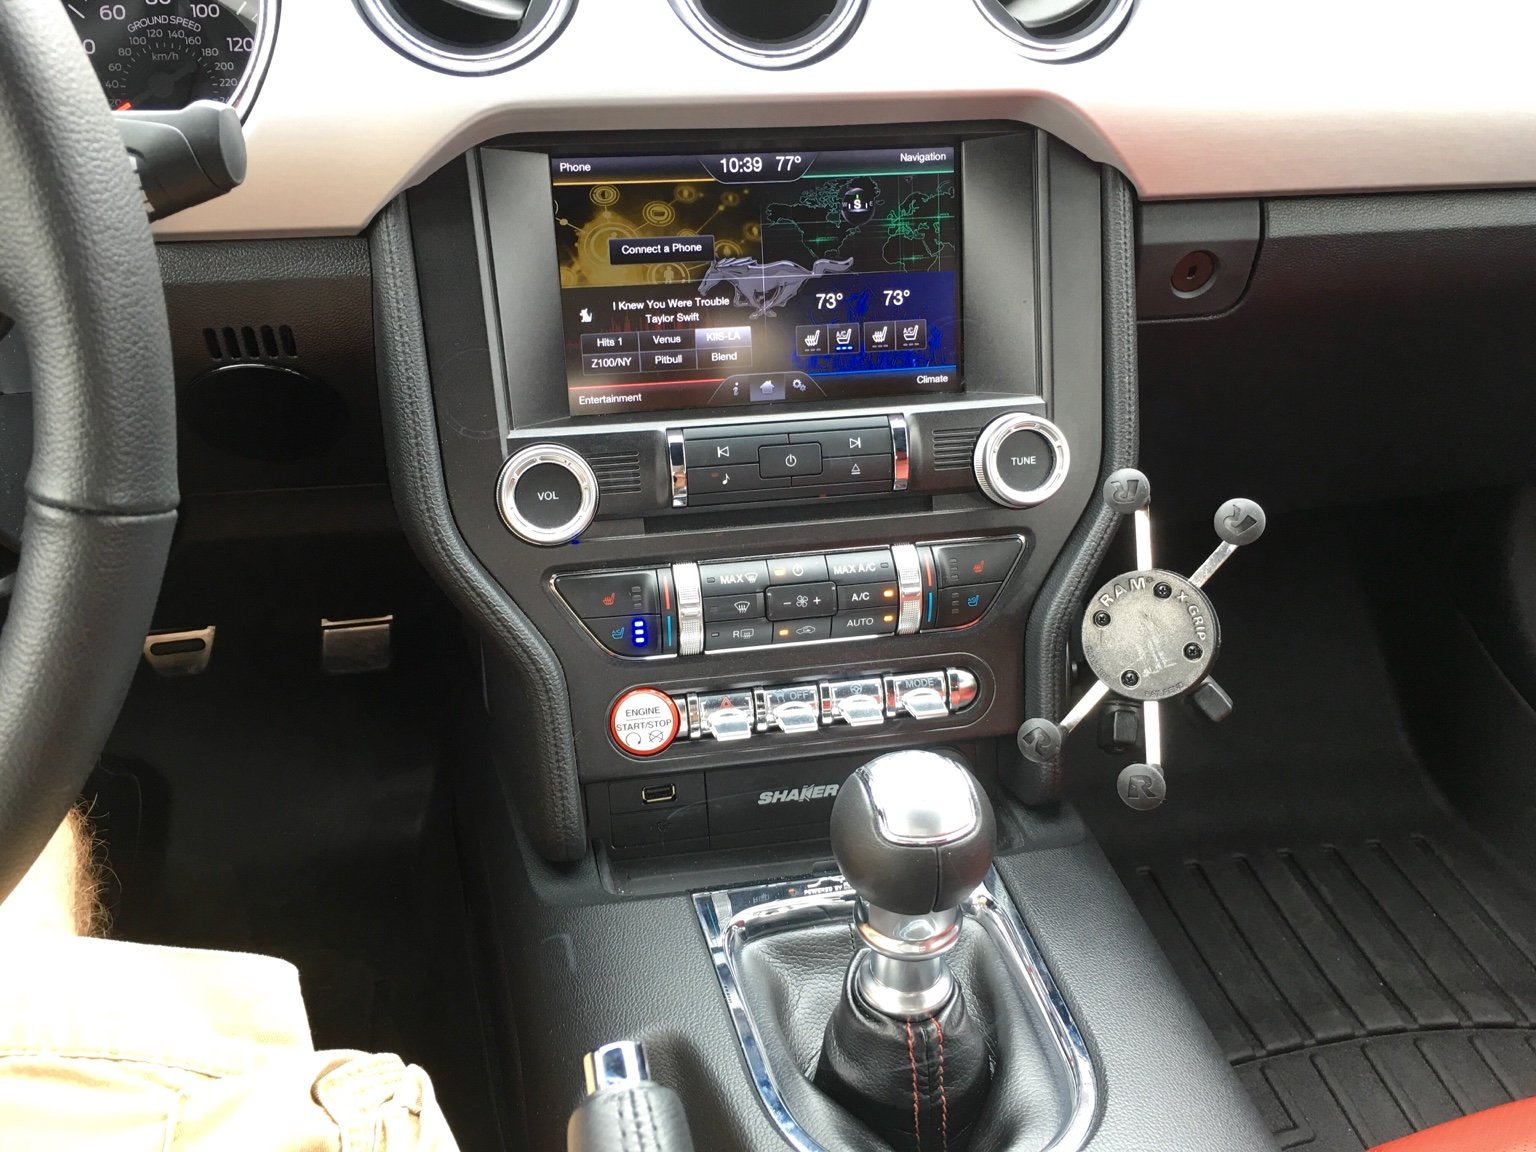 Cell phone car mounts for our mustangs imageuploadedbytapatalk1452654641 768596 jpg